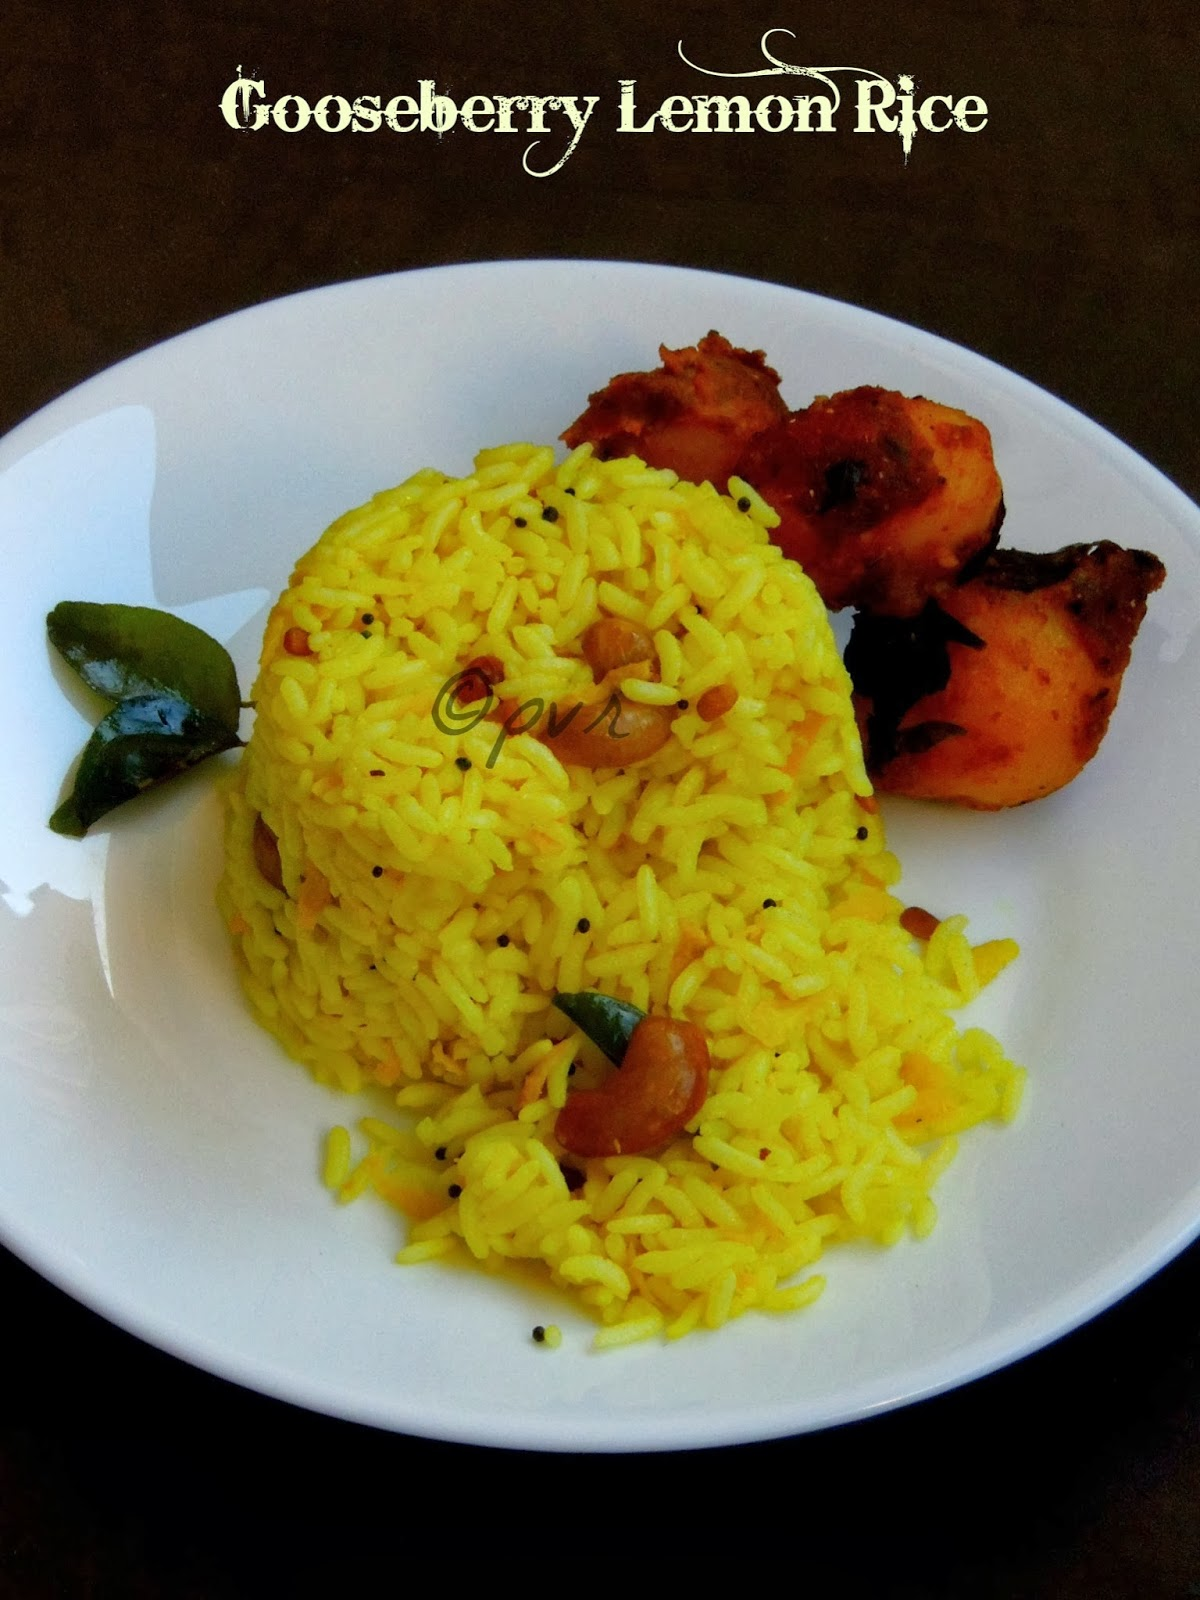 Gooseberry Lemon Rice